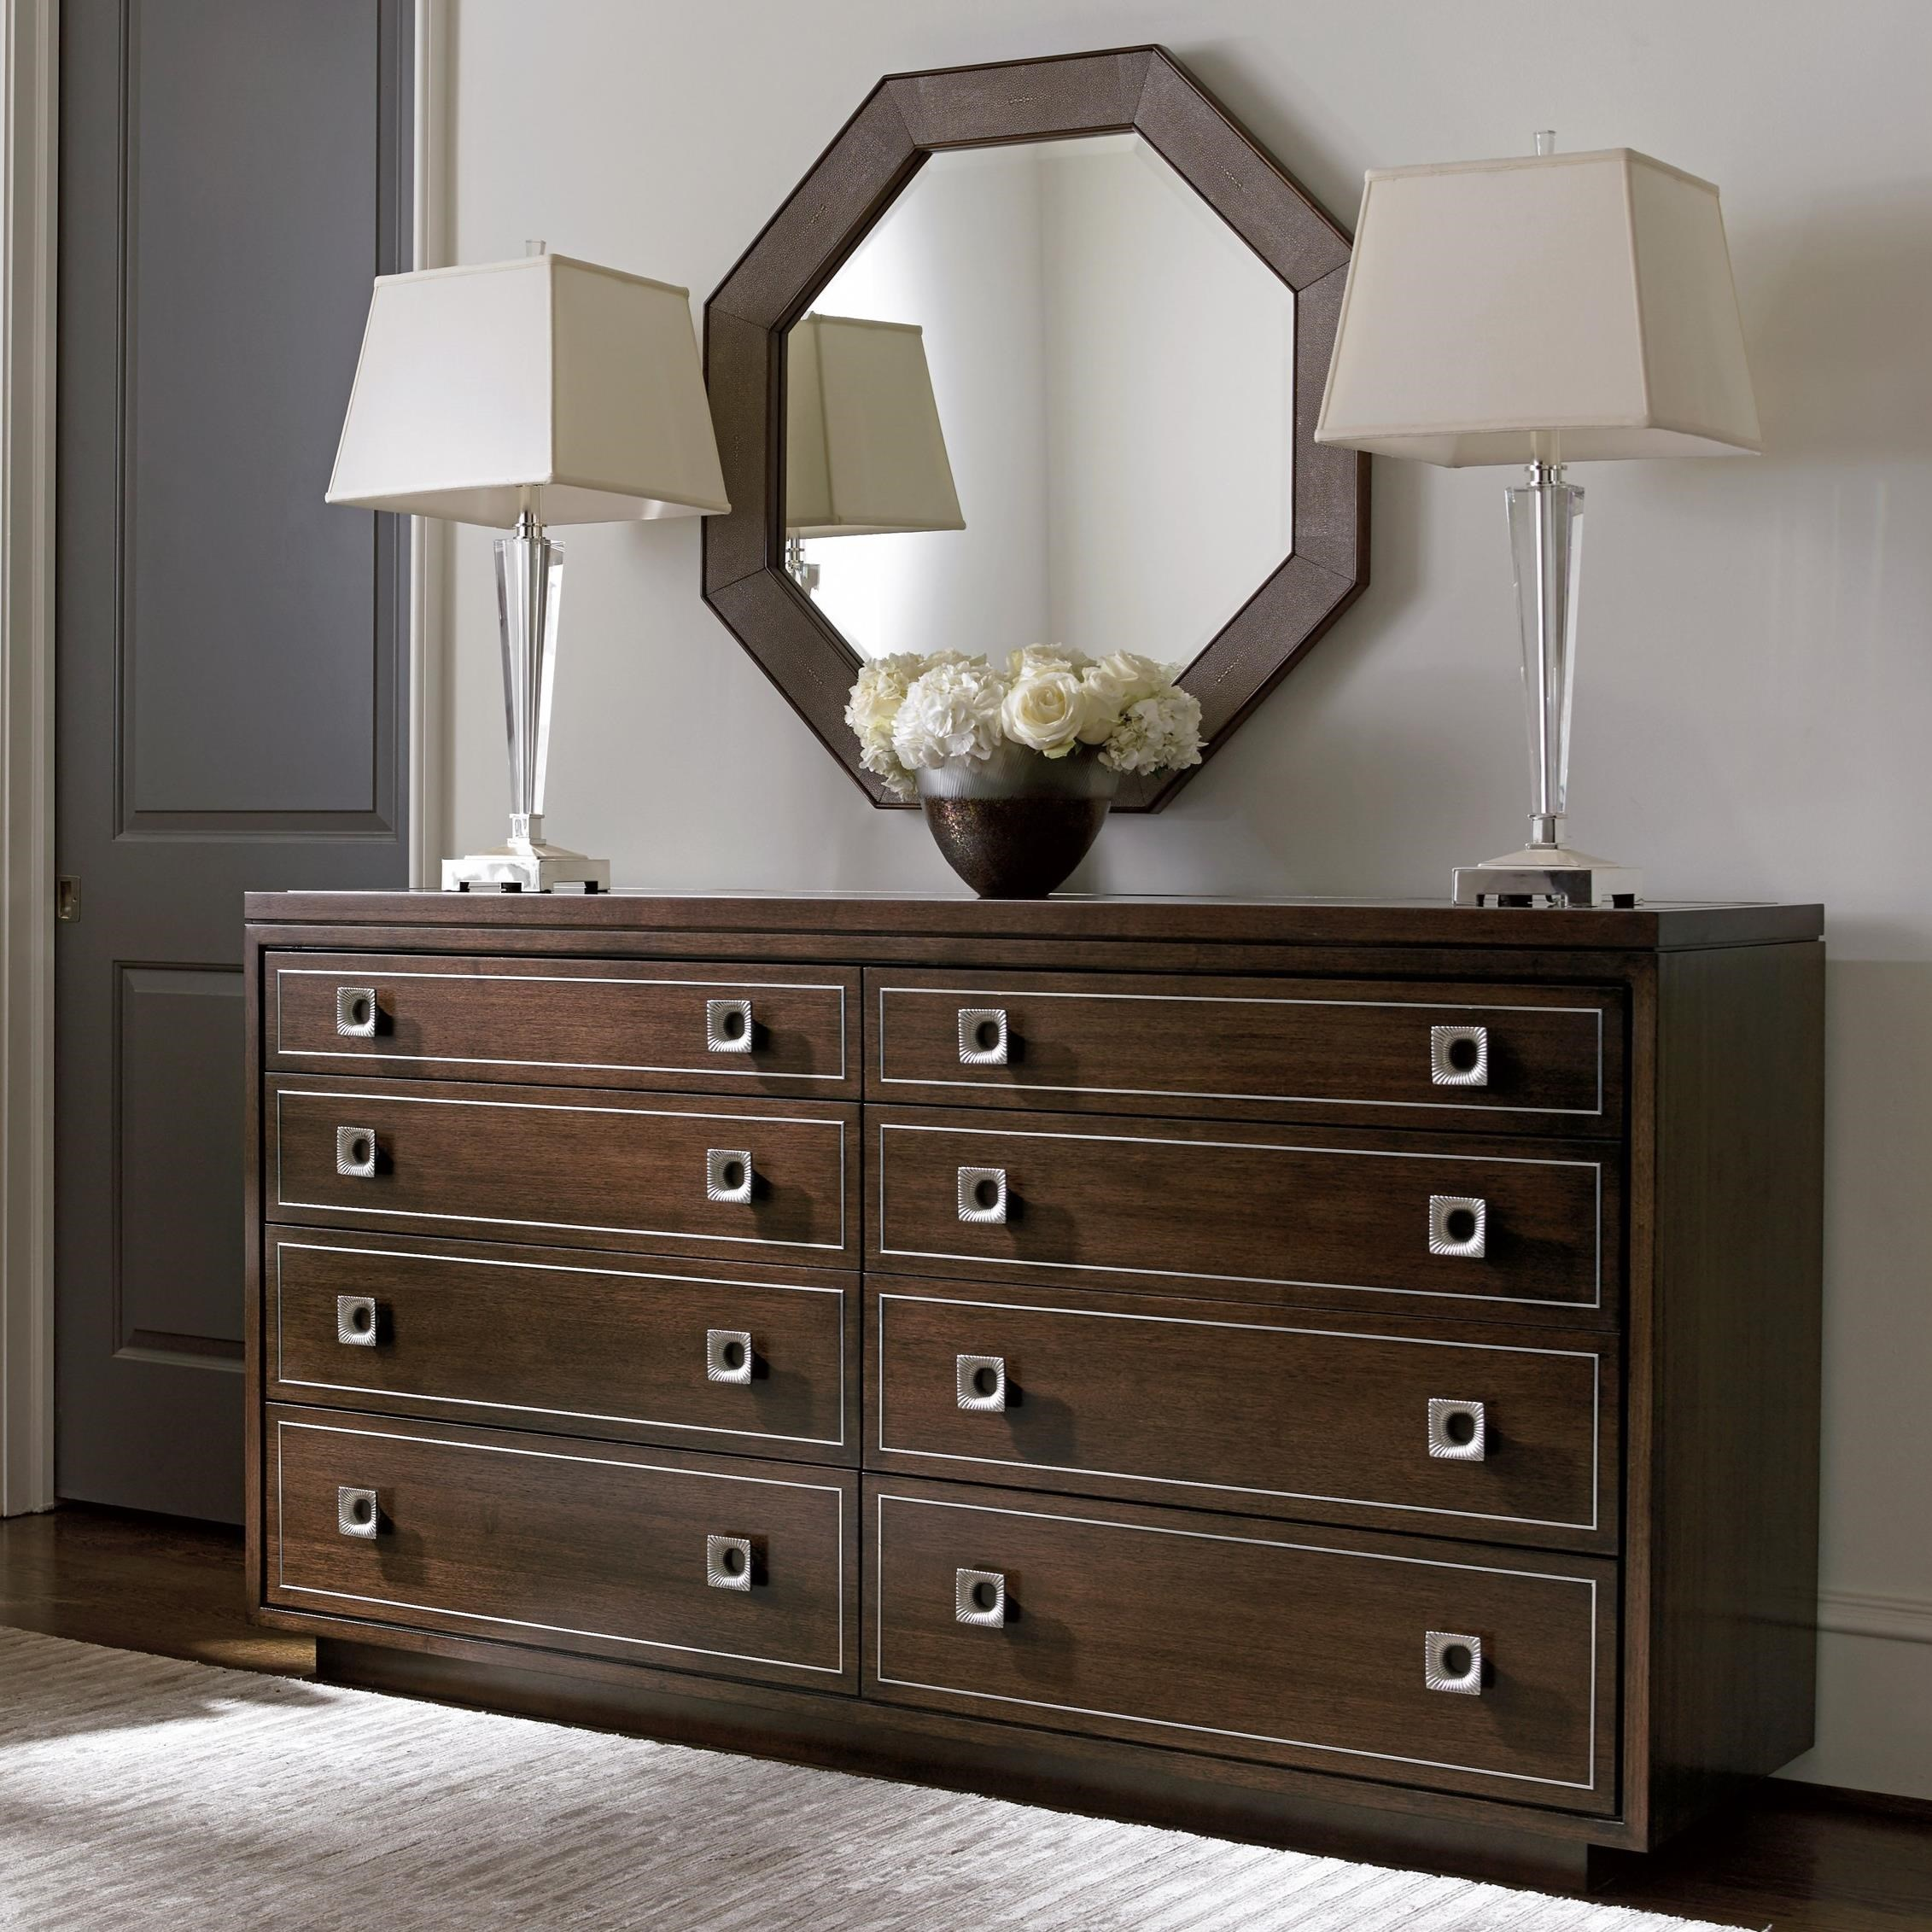 MacArthur Park Montage Dresser and Riva Mirror Set by Lexington at Furniture Fair - North Carolina